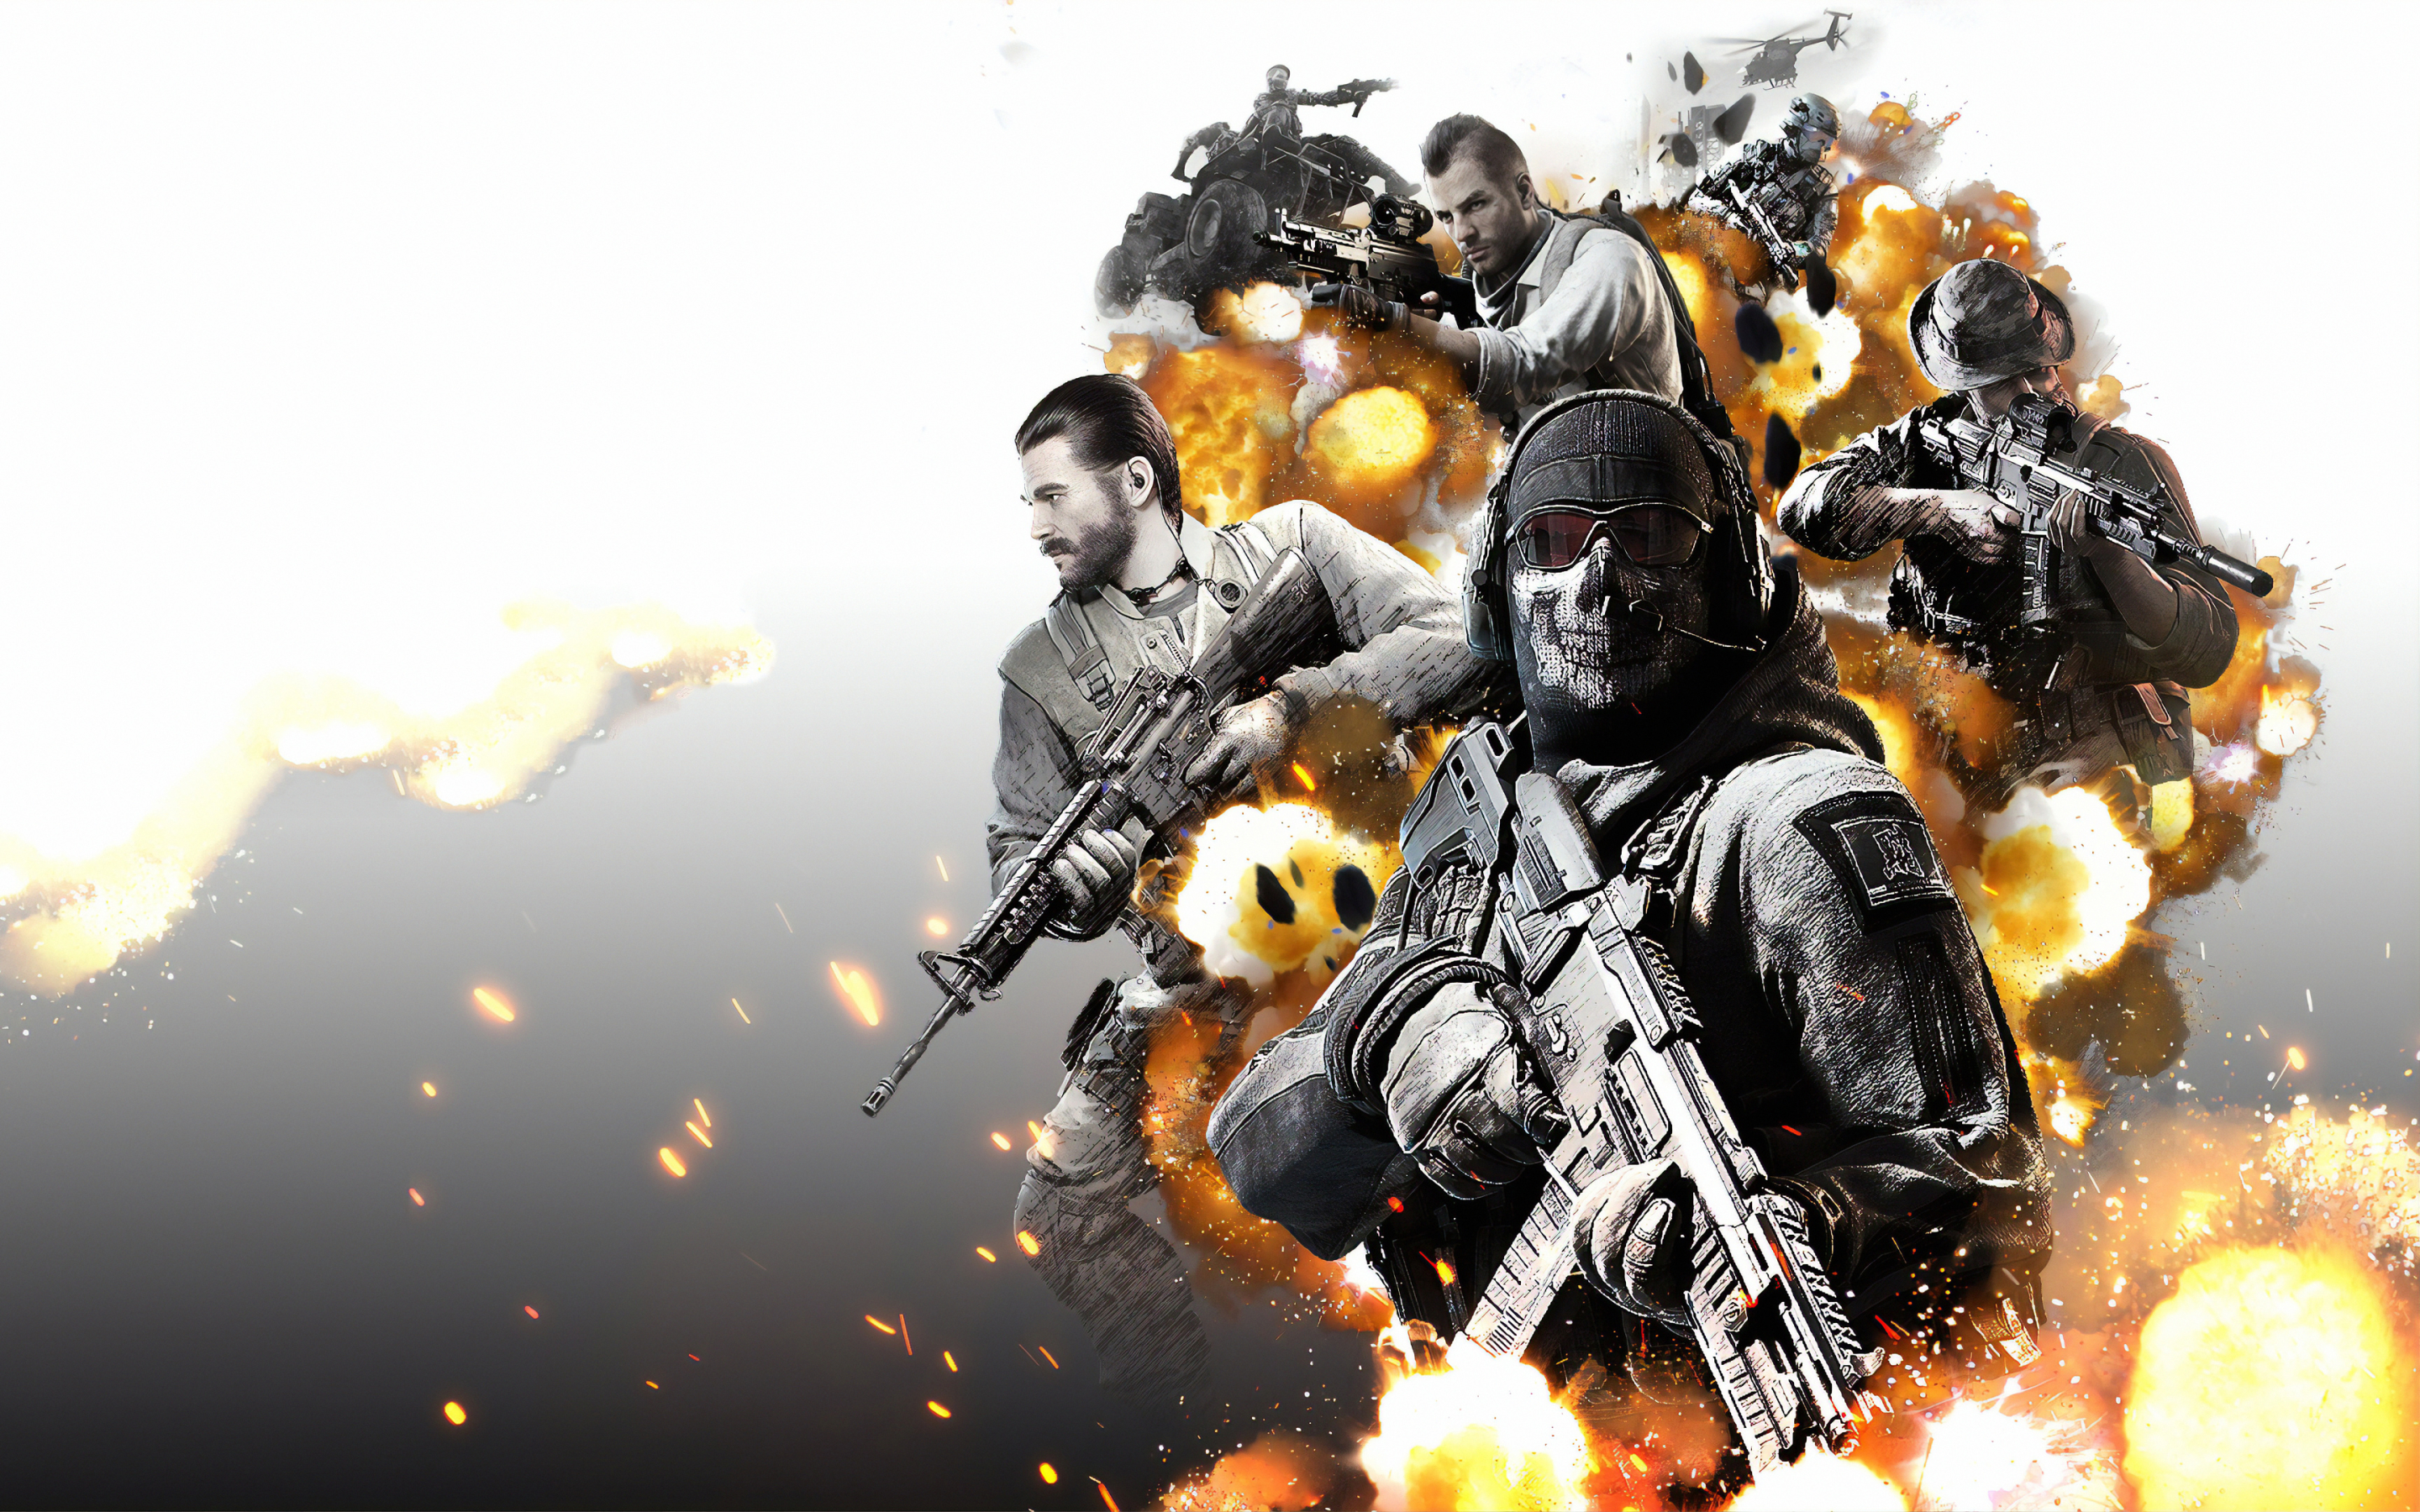 2880x1800 Call of Duty Mobile Poster Macbook Pro Retina ...